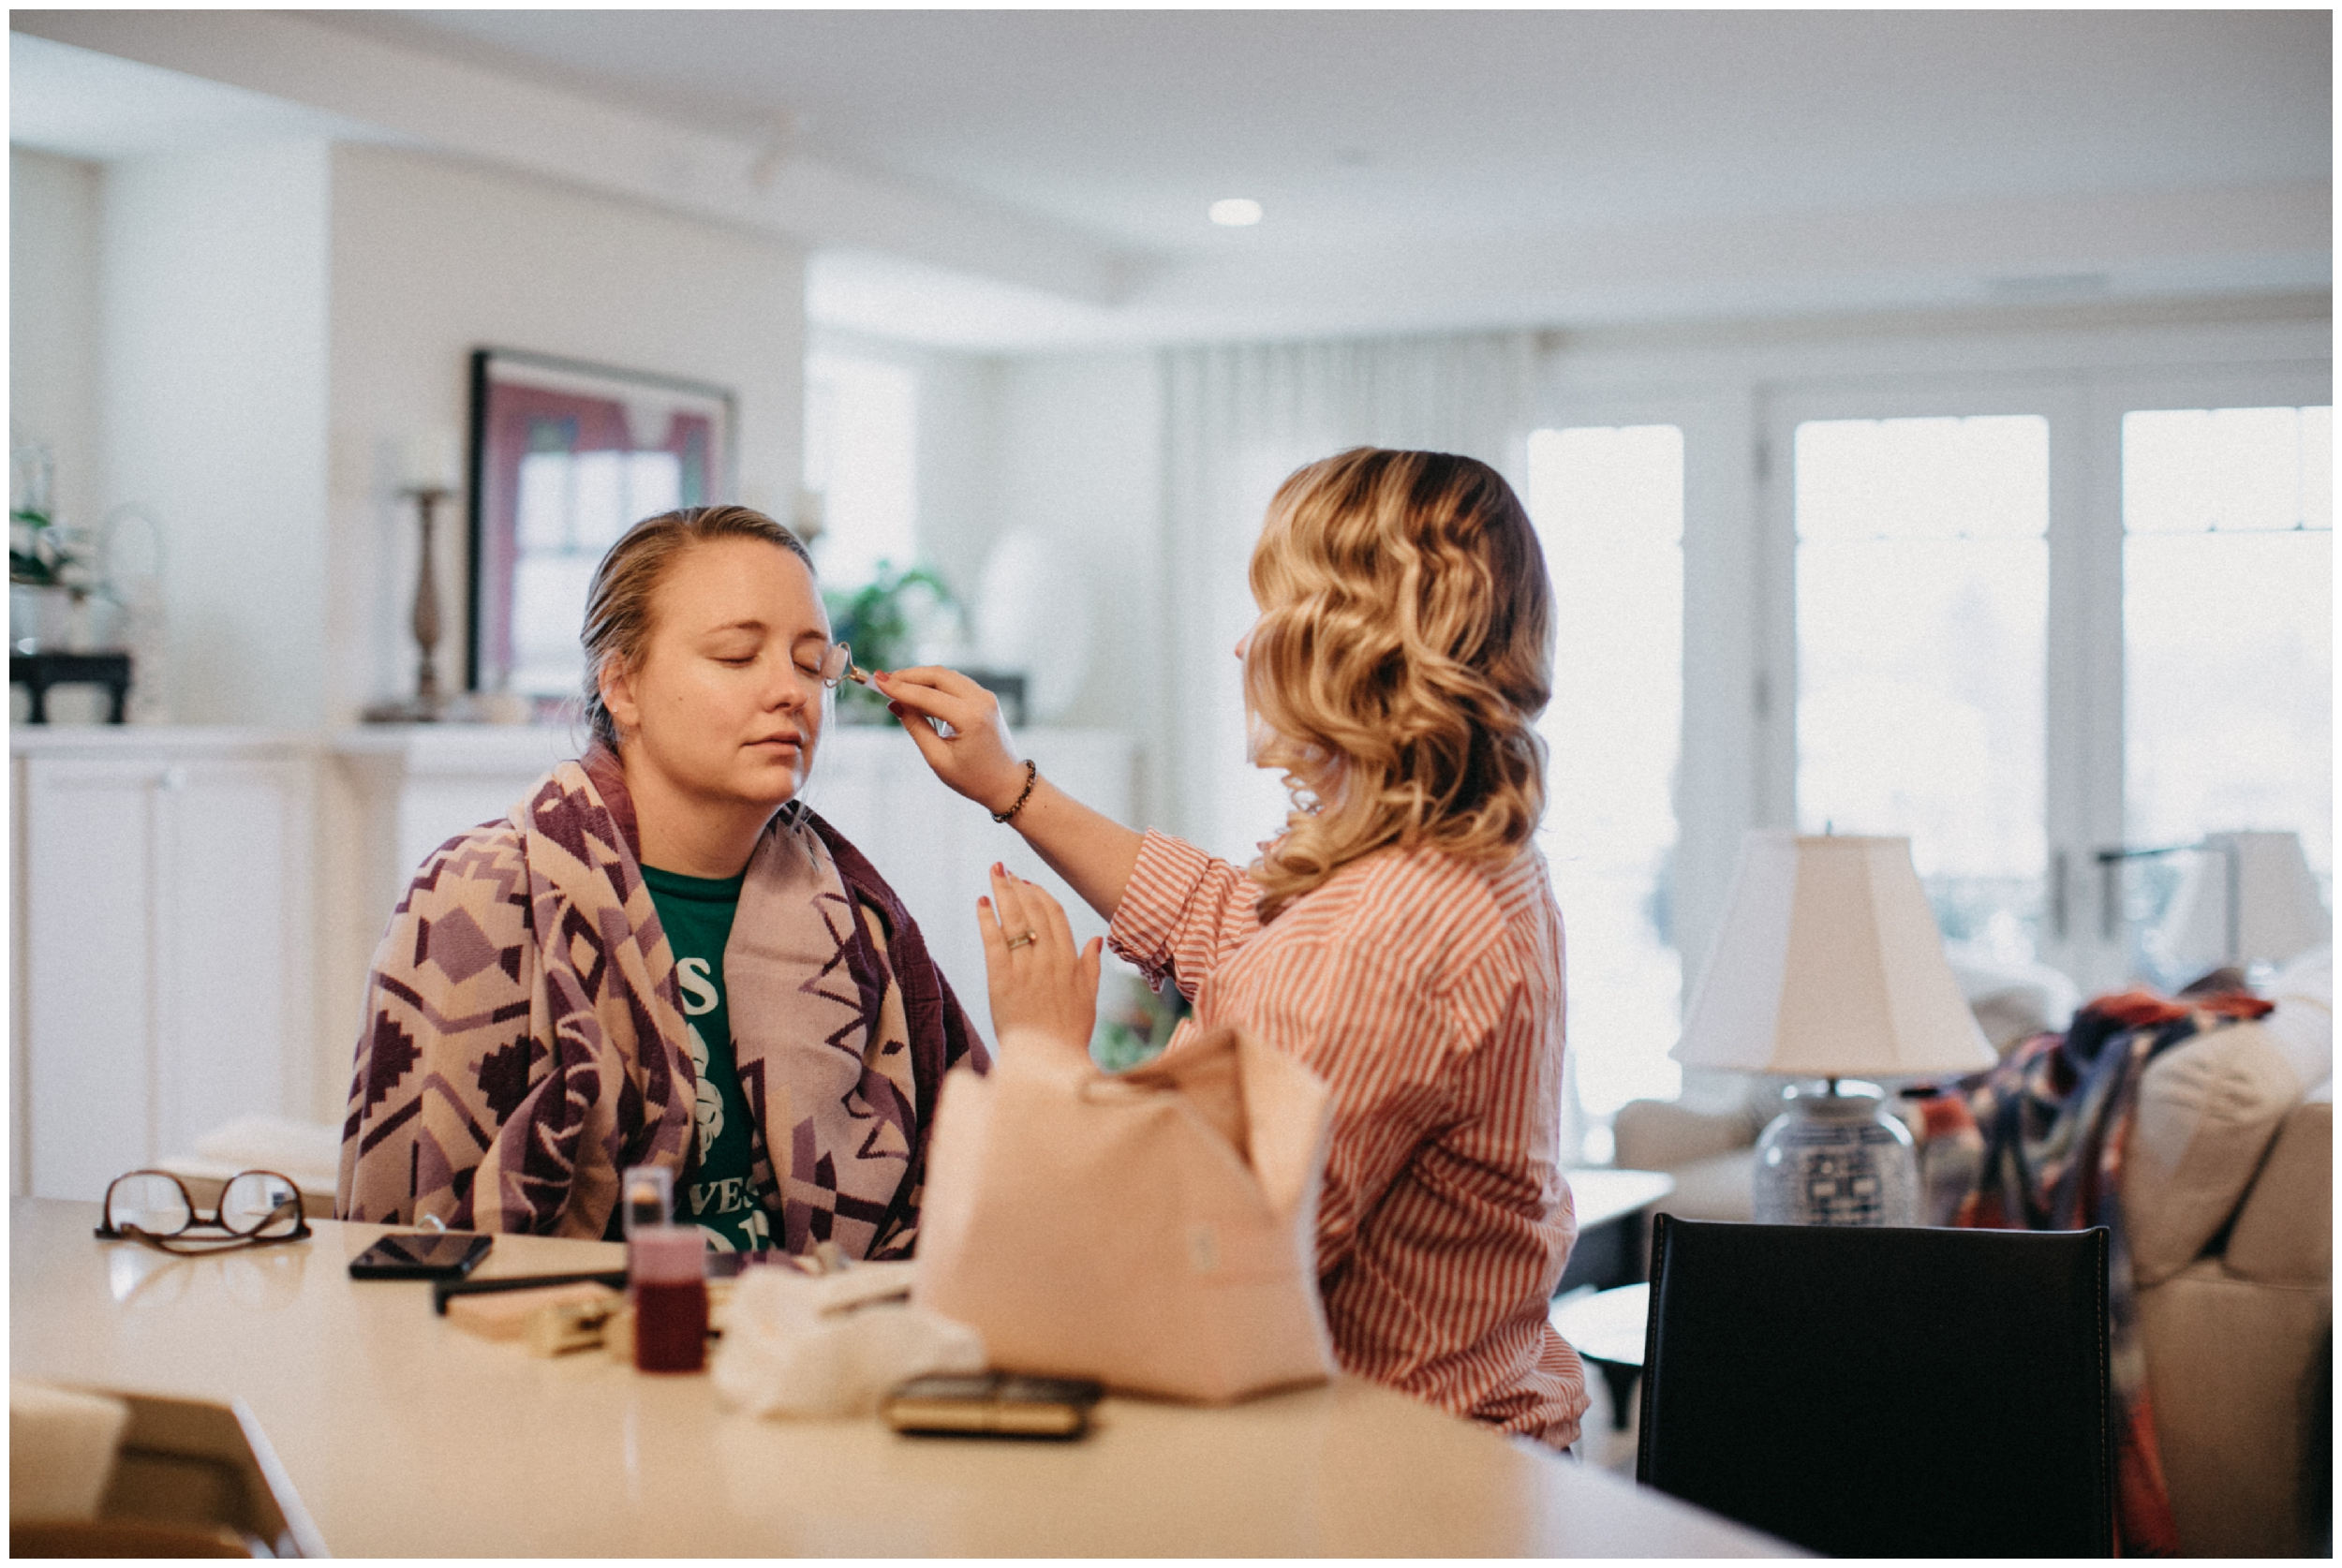 Sister helping bride put on her make-up for wedding at Paikka